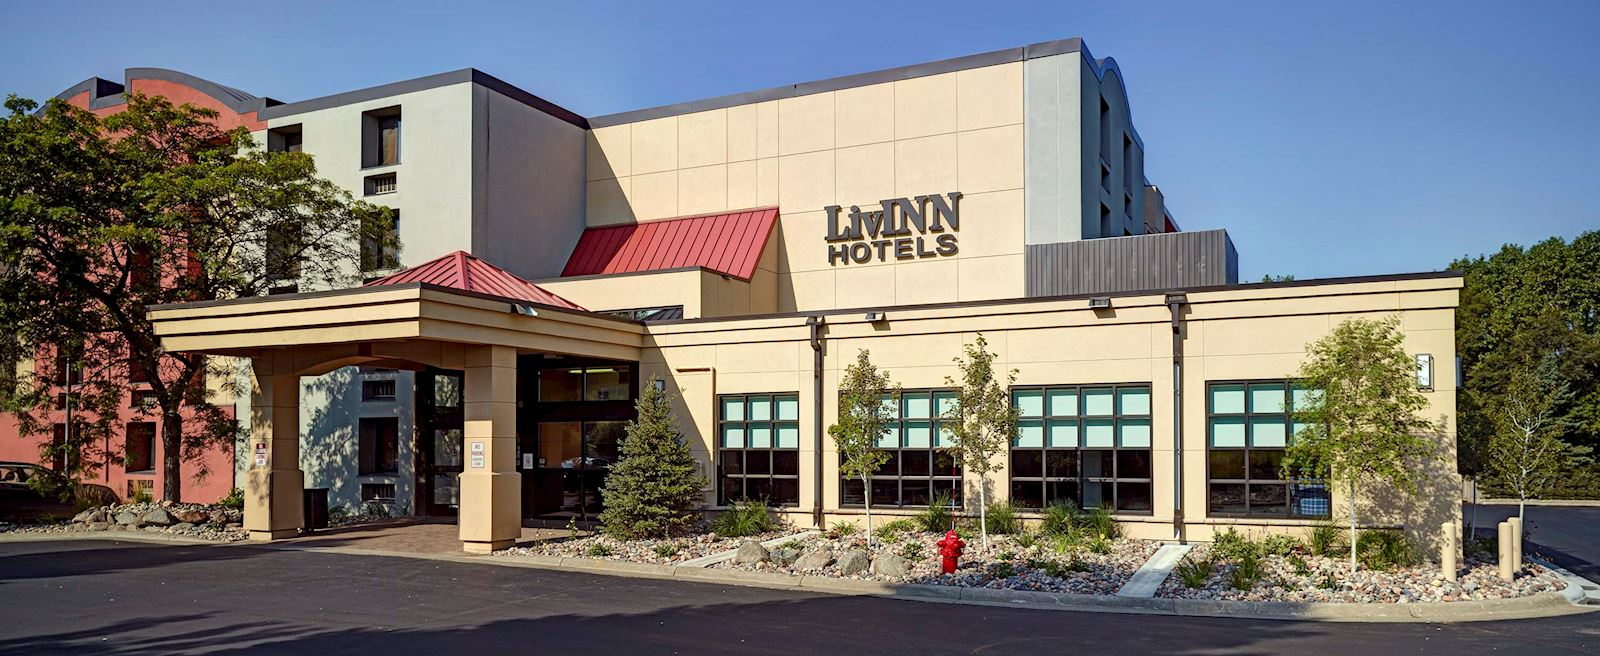 LivINN Hotels Minneapolis, Minnesota